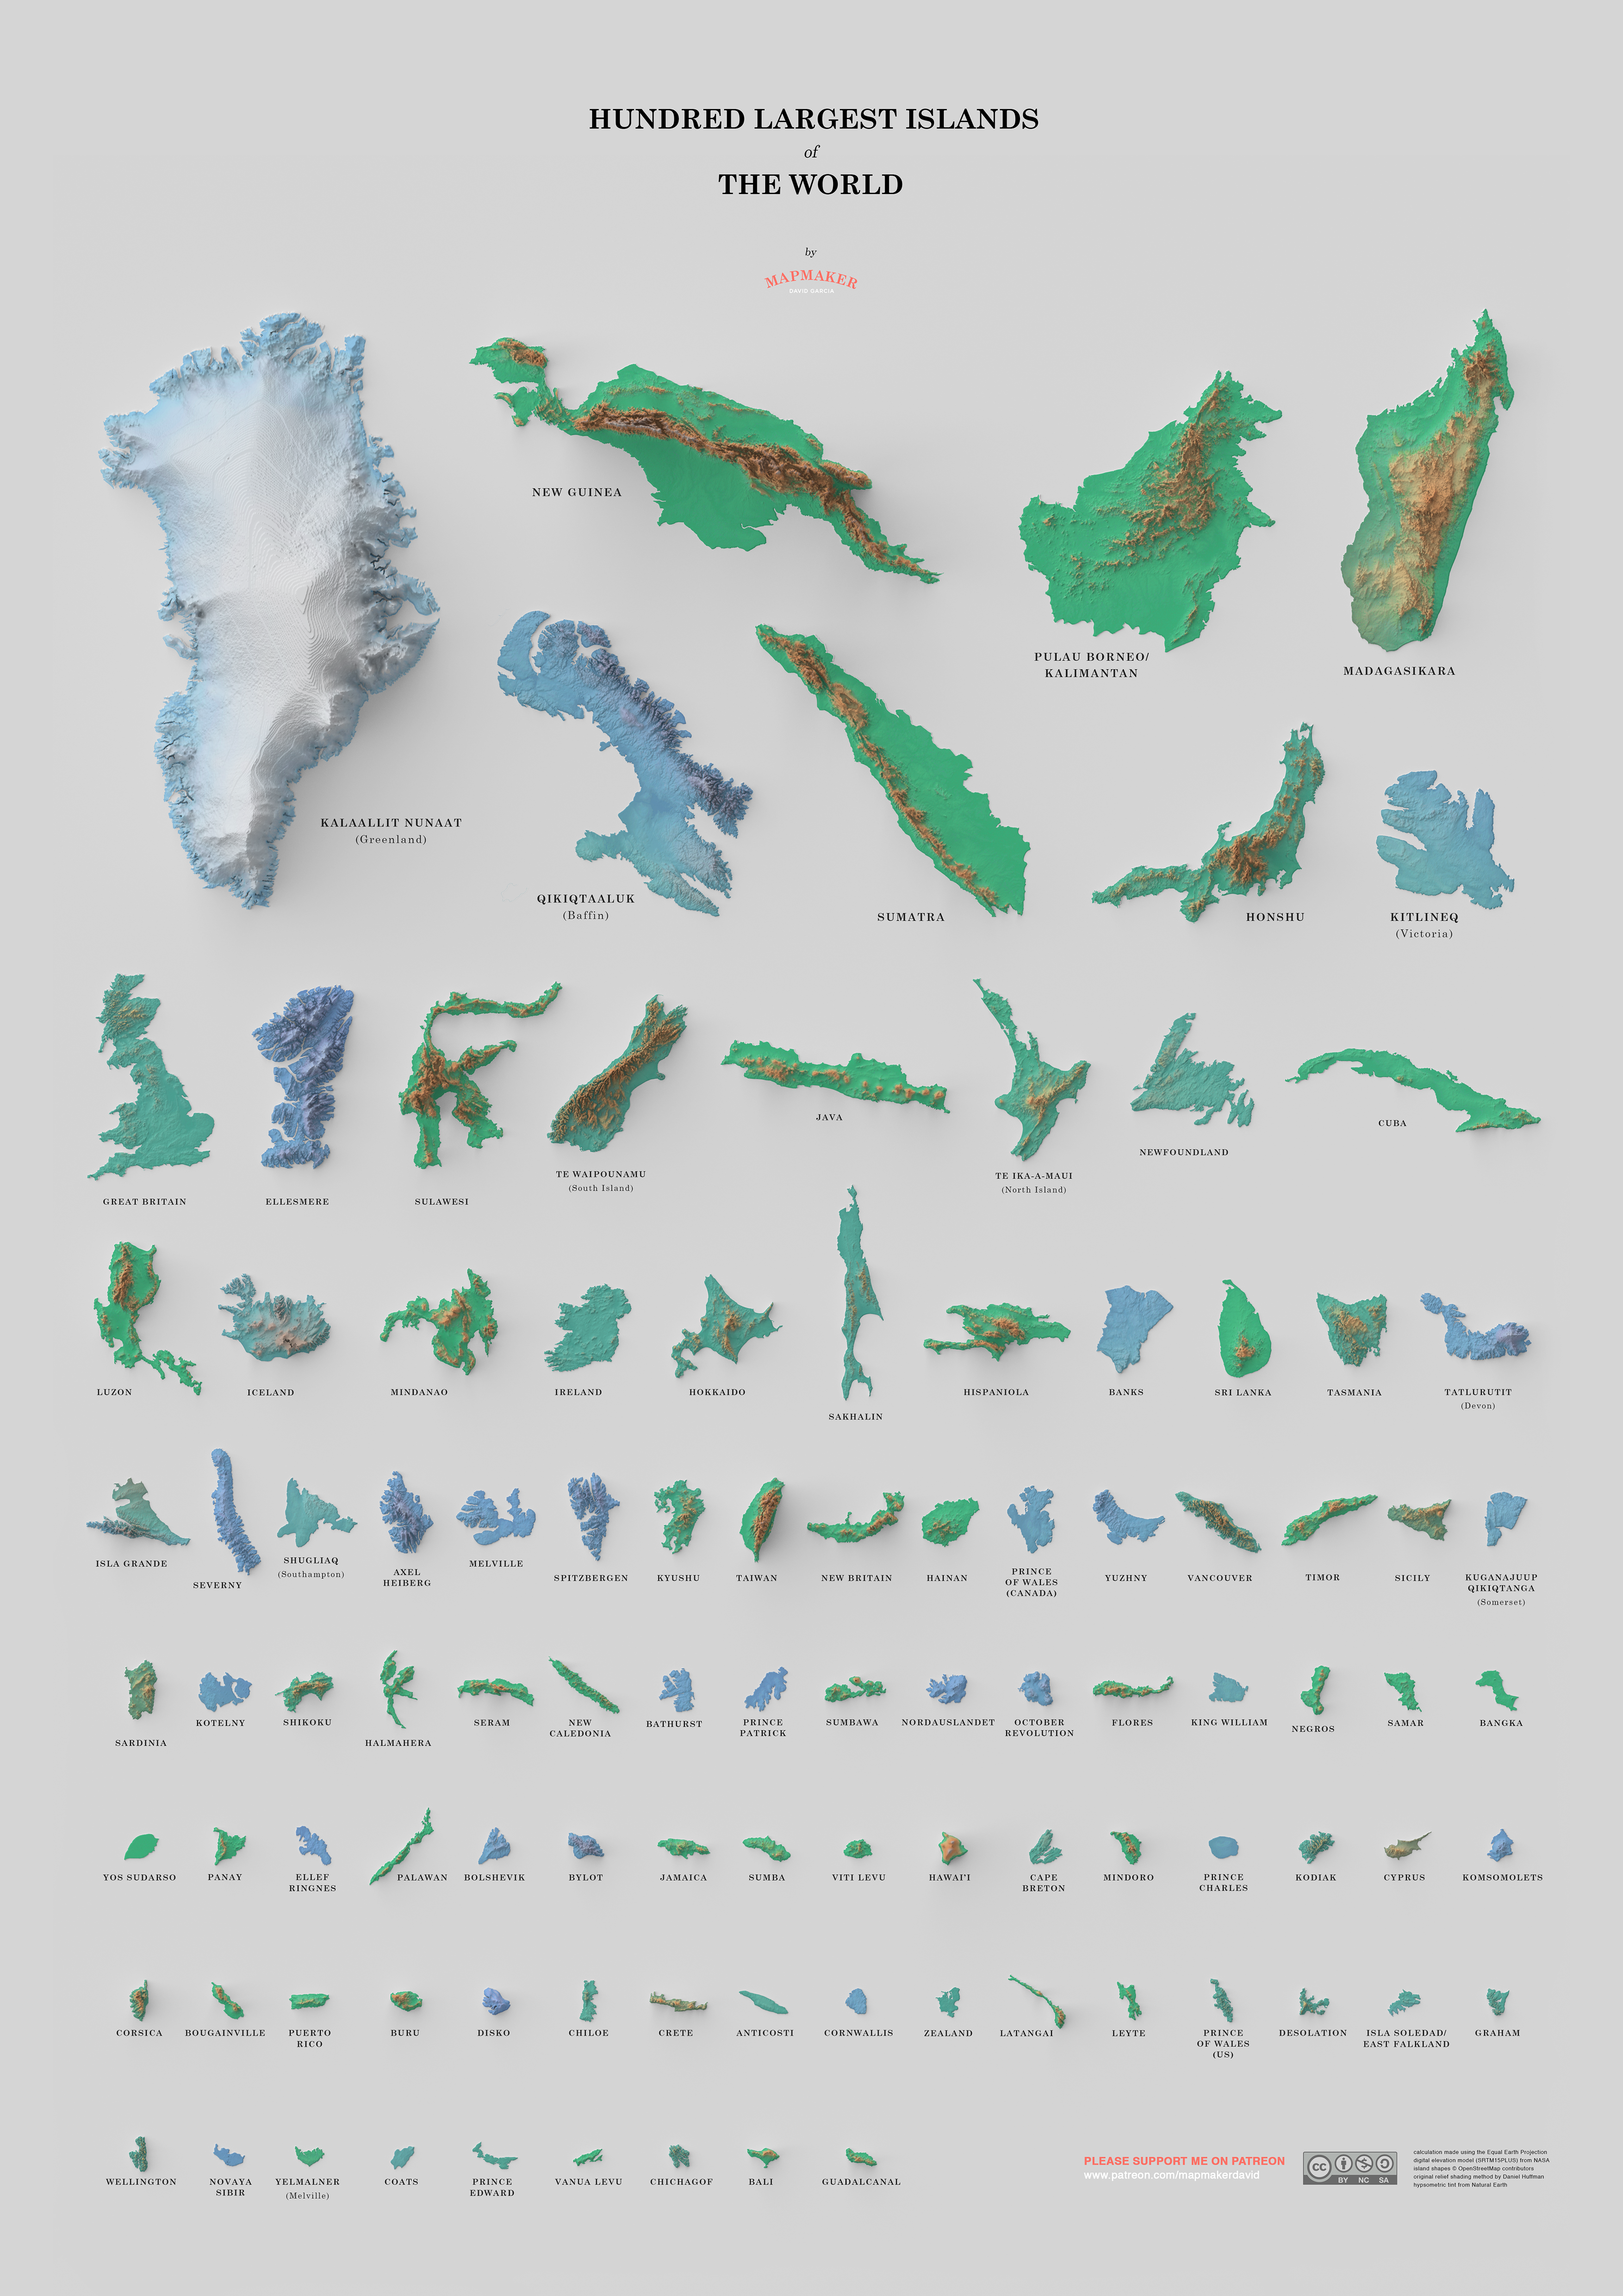 Hundred Largest Islands of the World